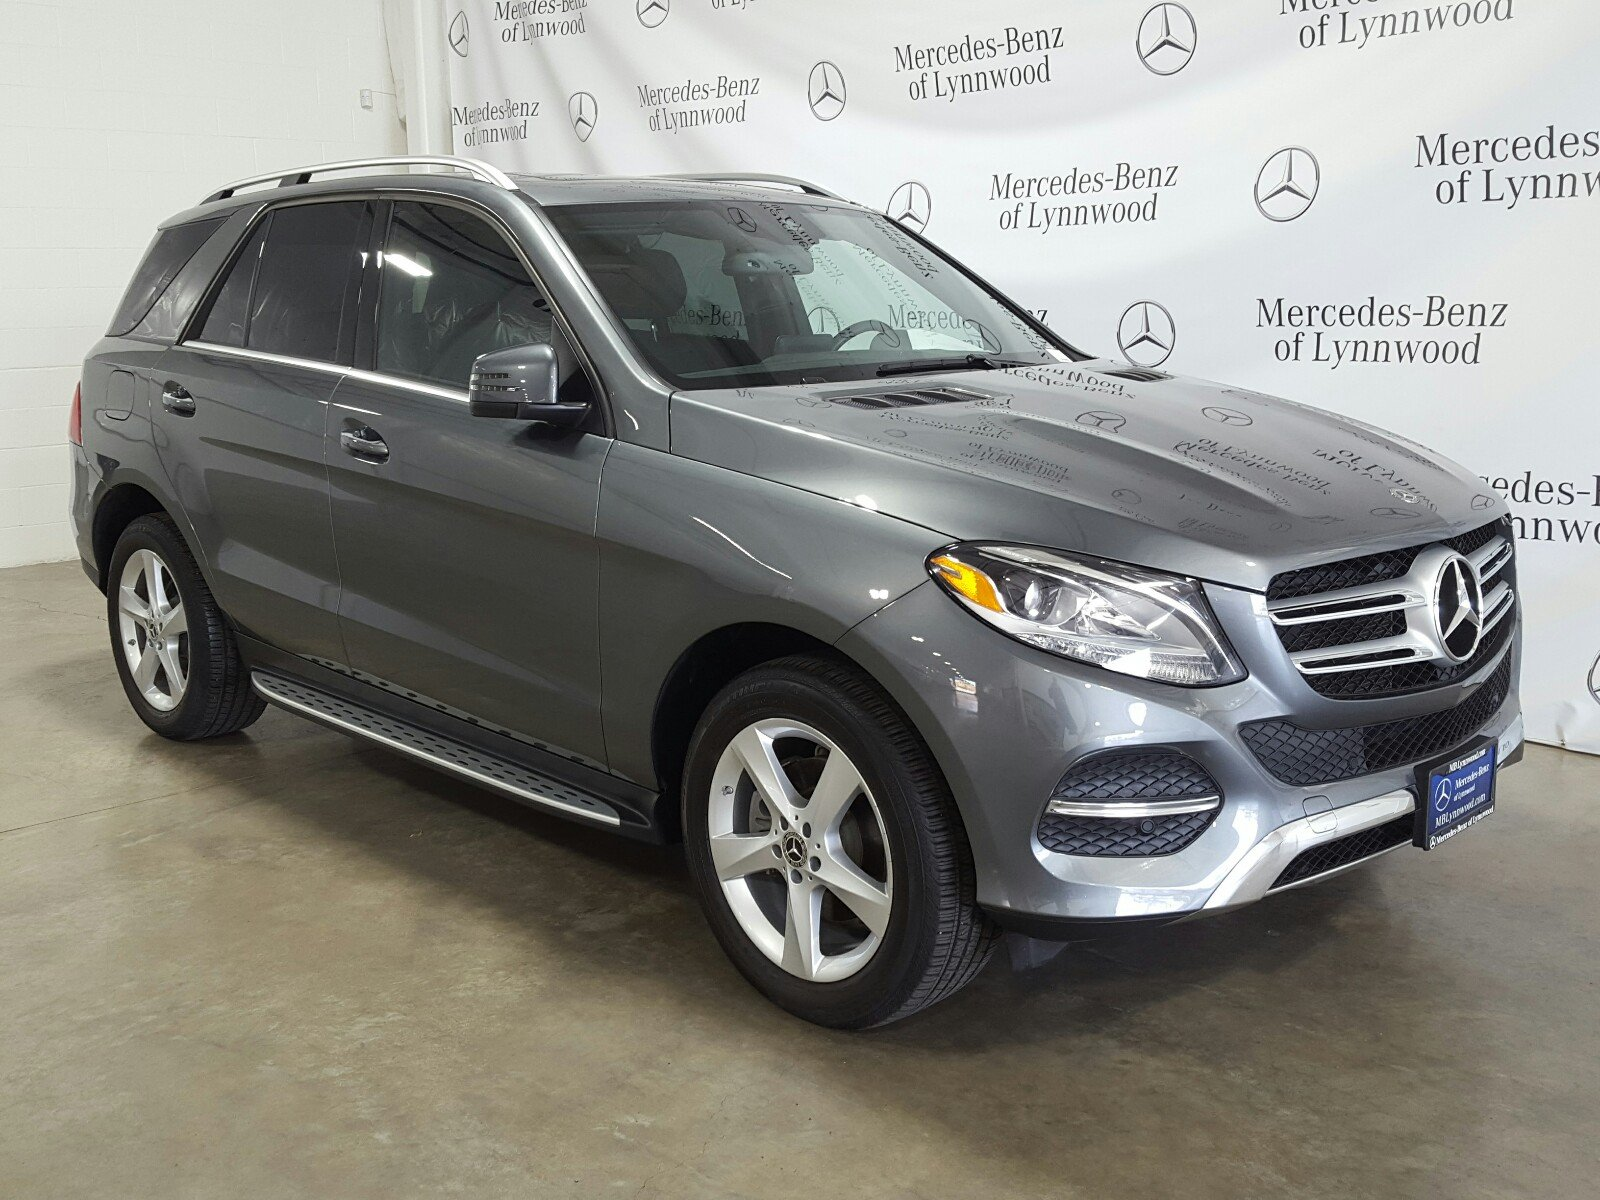 Certified Pre Owned 2018 Mercedes Benz GLE GLE 350 4MATIC